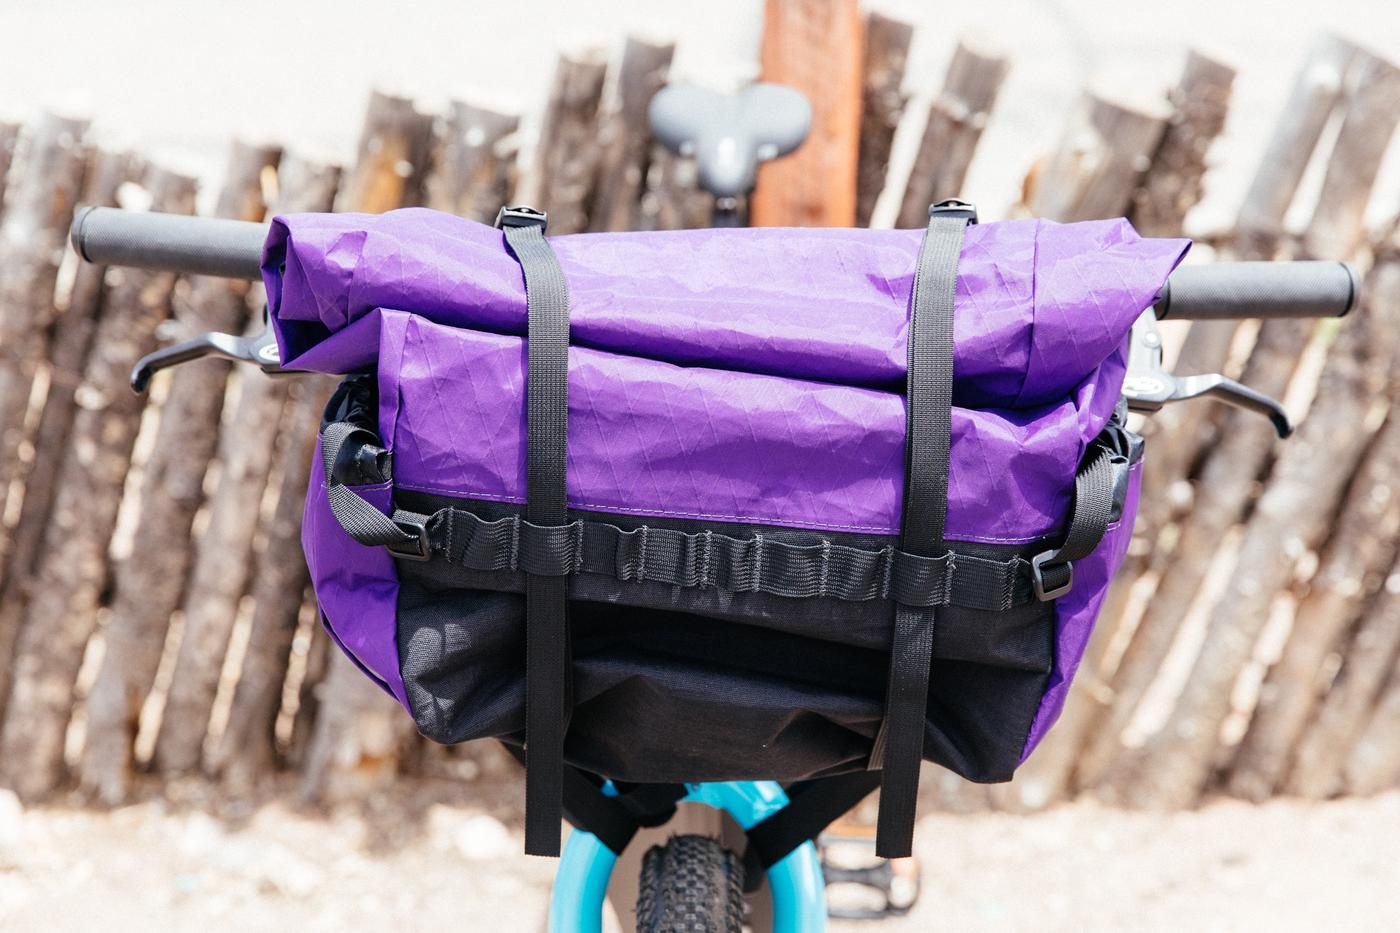 A Look at the Ultralight Tribulus Limited Endover Handlebar Bag